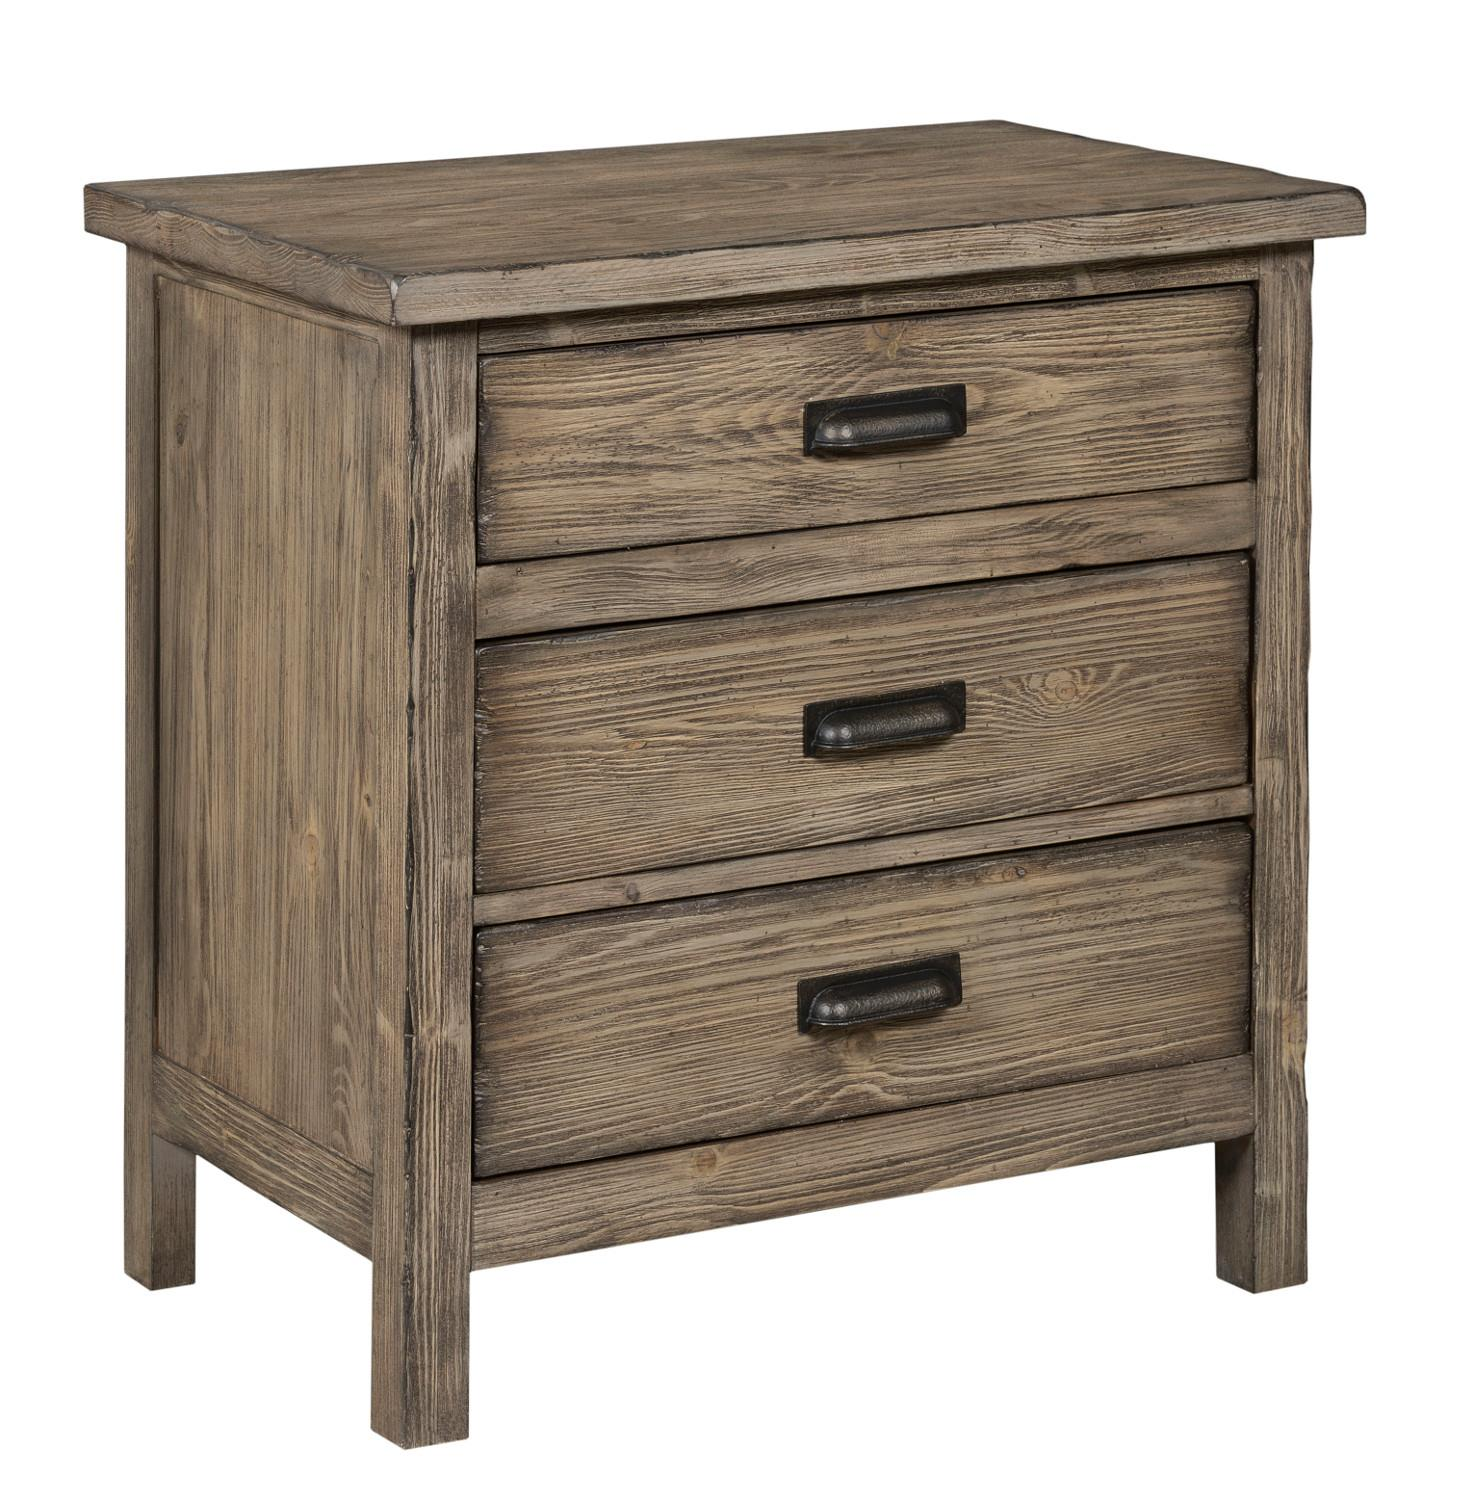 Foundry Nightstand by Kincaid Furniture at Godby Home Furnishings